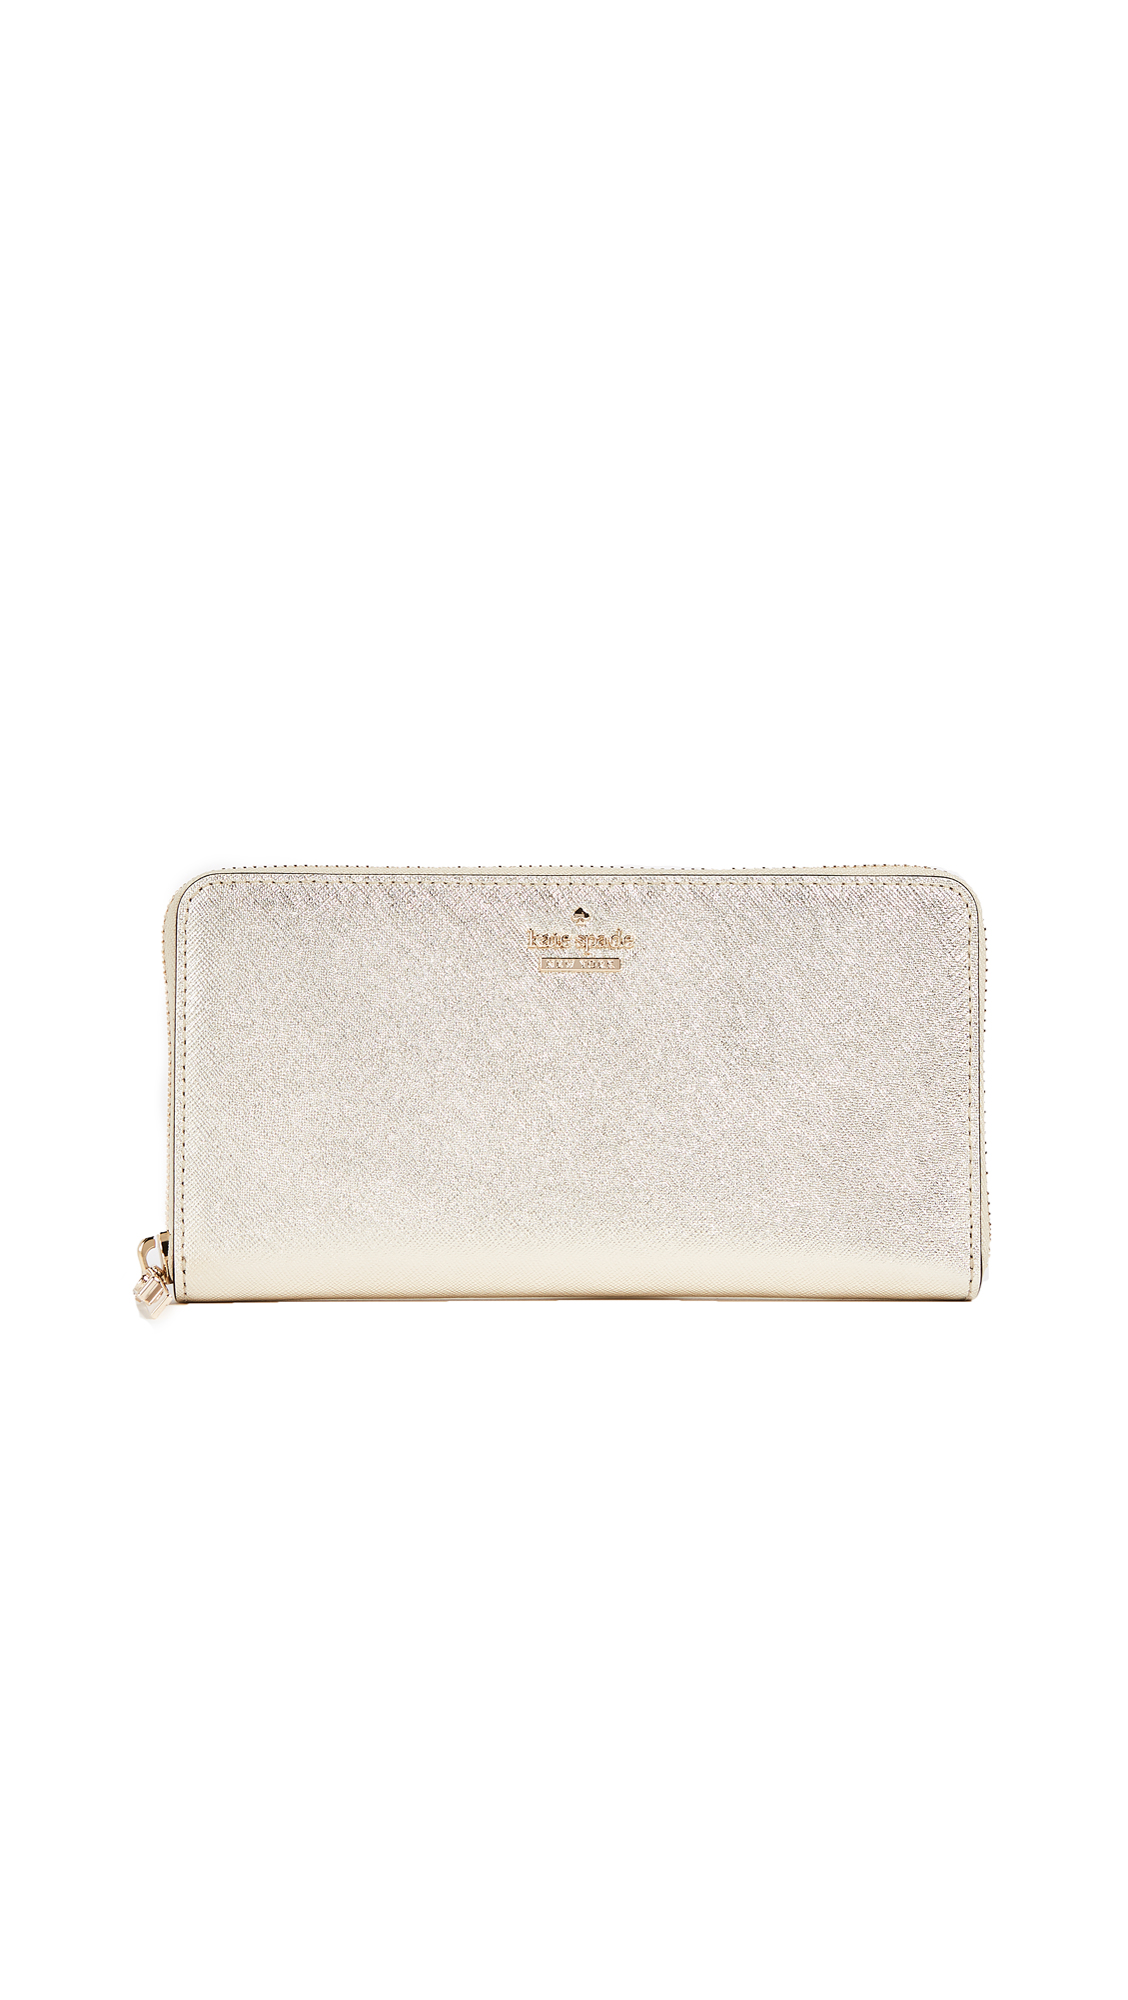 Kate Spade New York Cameron Street Lacey Zip Around Wallet - Gold